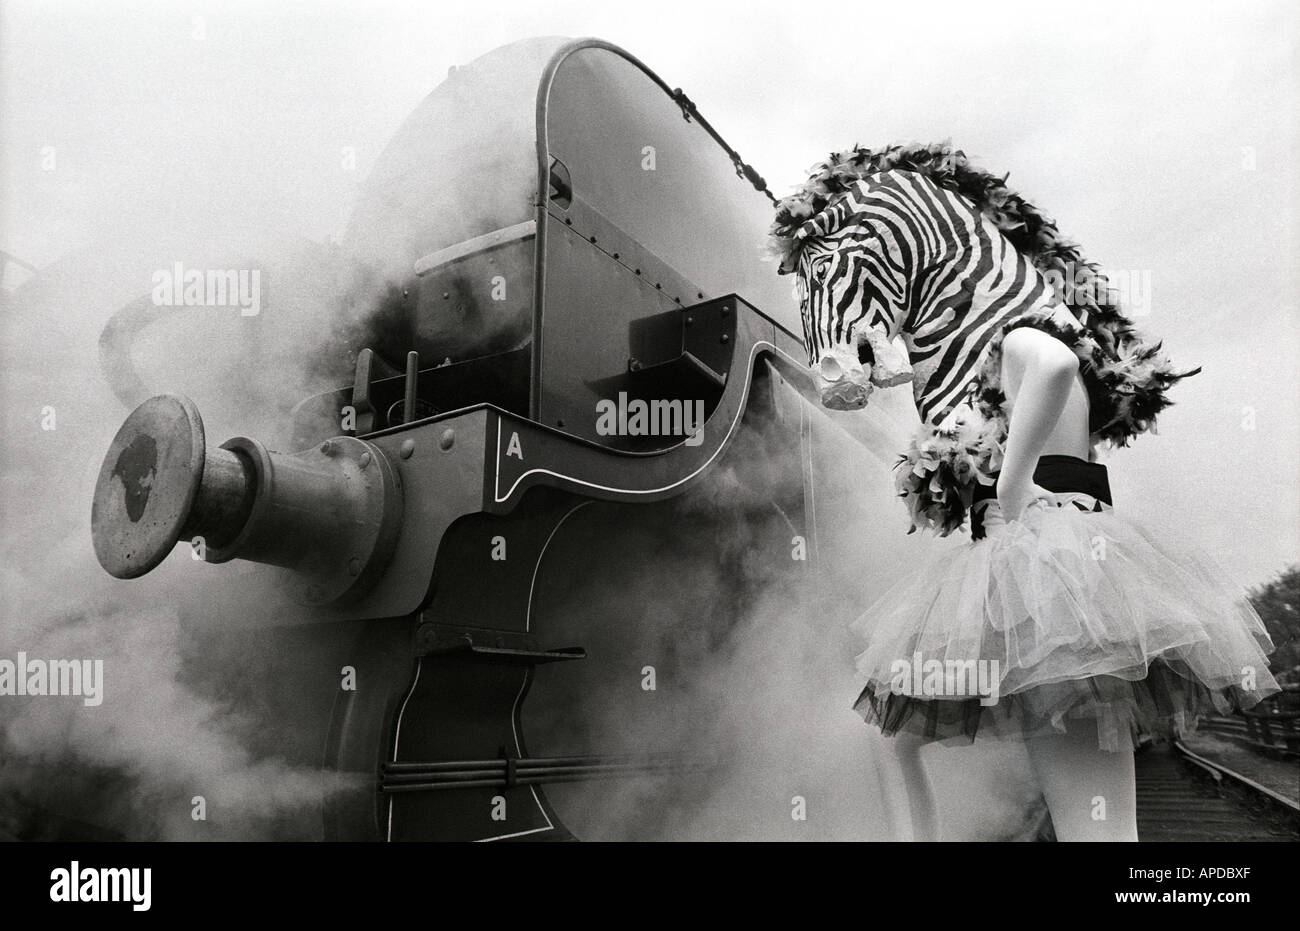 A ballet dancer dressed as a zebra confronts an old steam train. - Stock Image